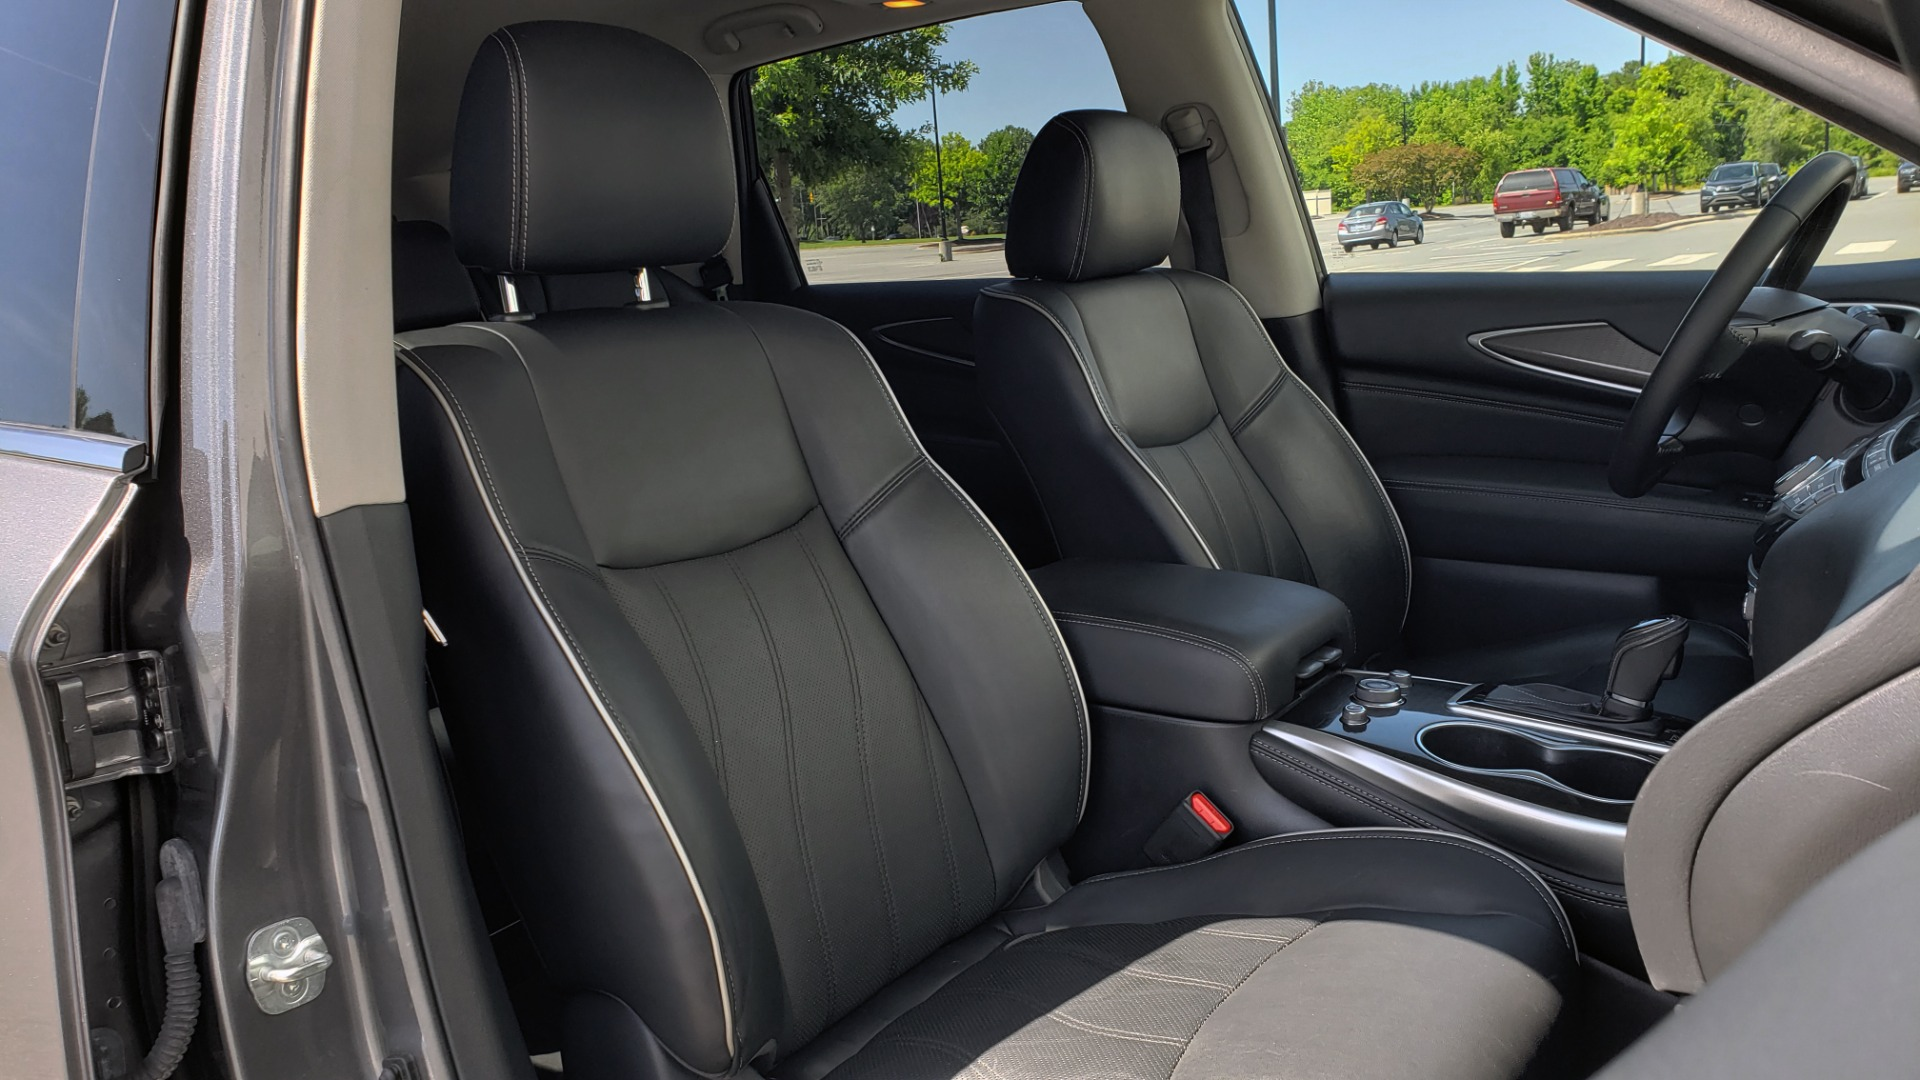 Used 2018 INFINITI QX60 3.5L V6 / FWD / CVT TRANS / NAV / SUNROOF / 3-ROWS / REARVIEW for sale $31,999 at Formula Imports in Charlotte NC 28227 71